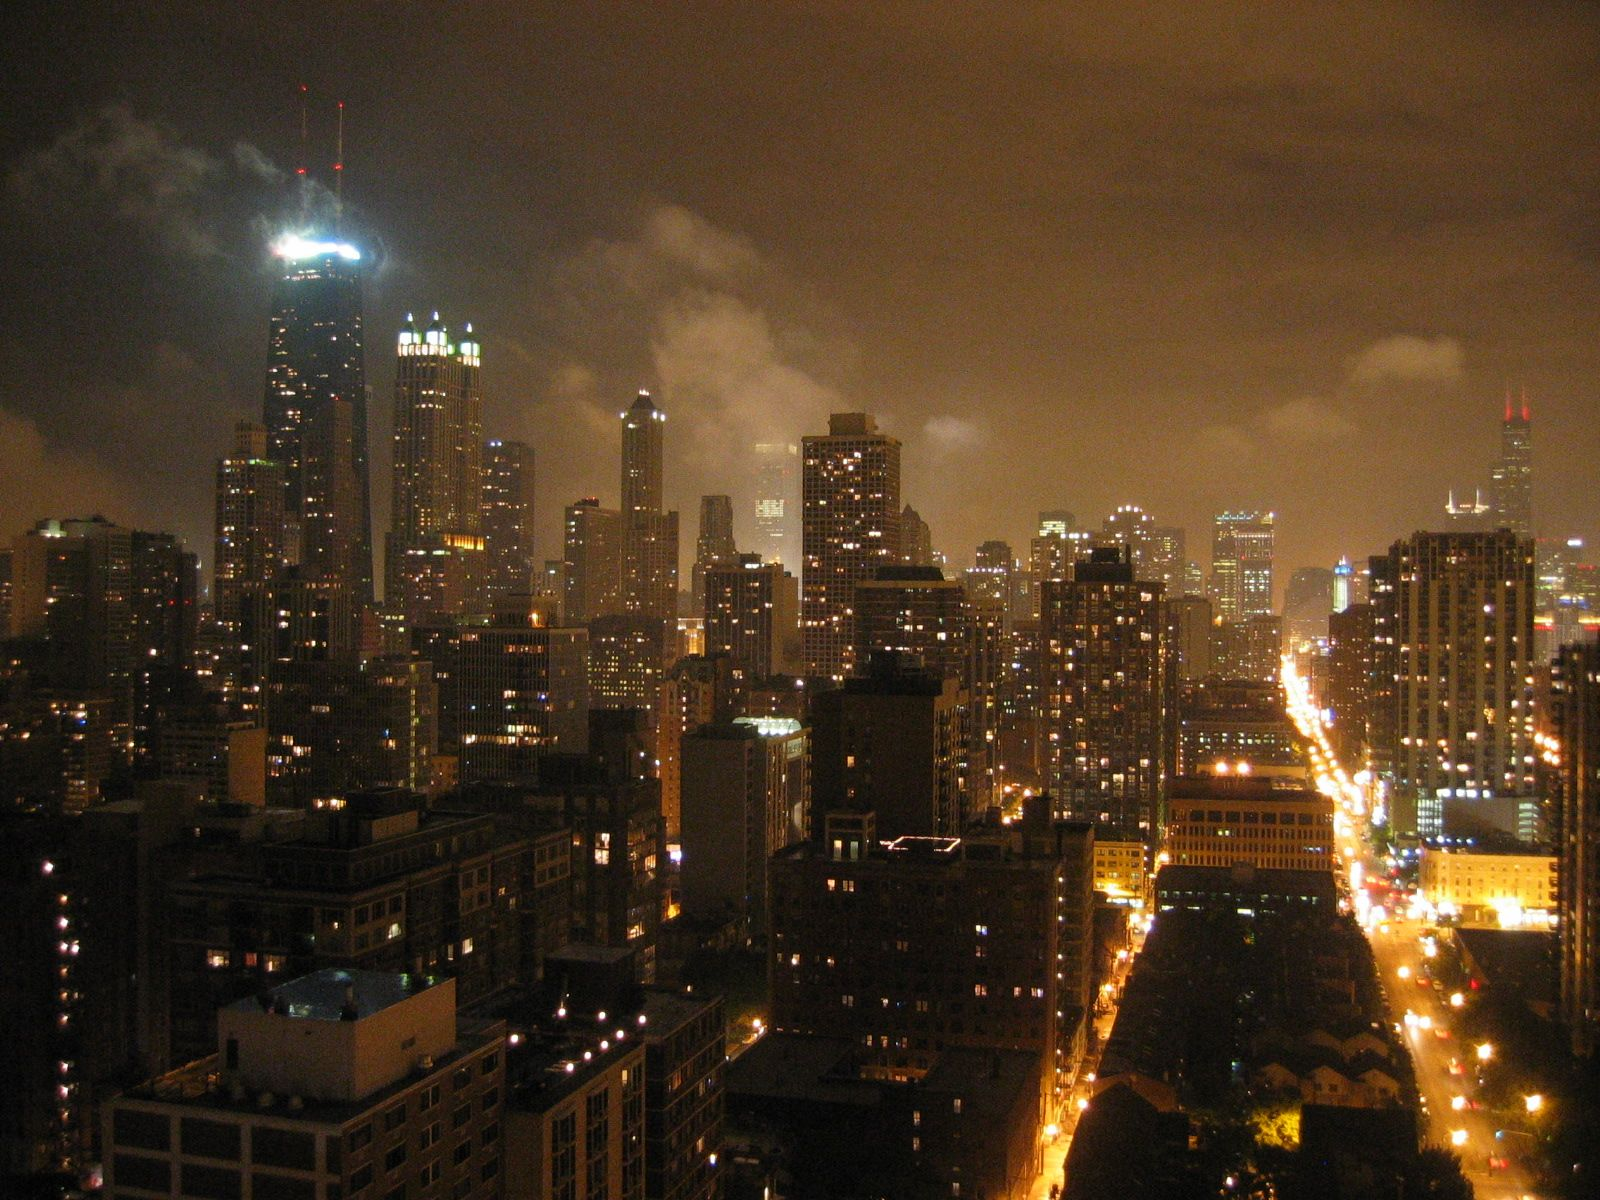 Download chicago wallpapers chicago photos chicago hd backgrounds jrballejuly2004chicagoskylineatnight voltagebd Gallery